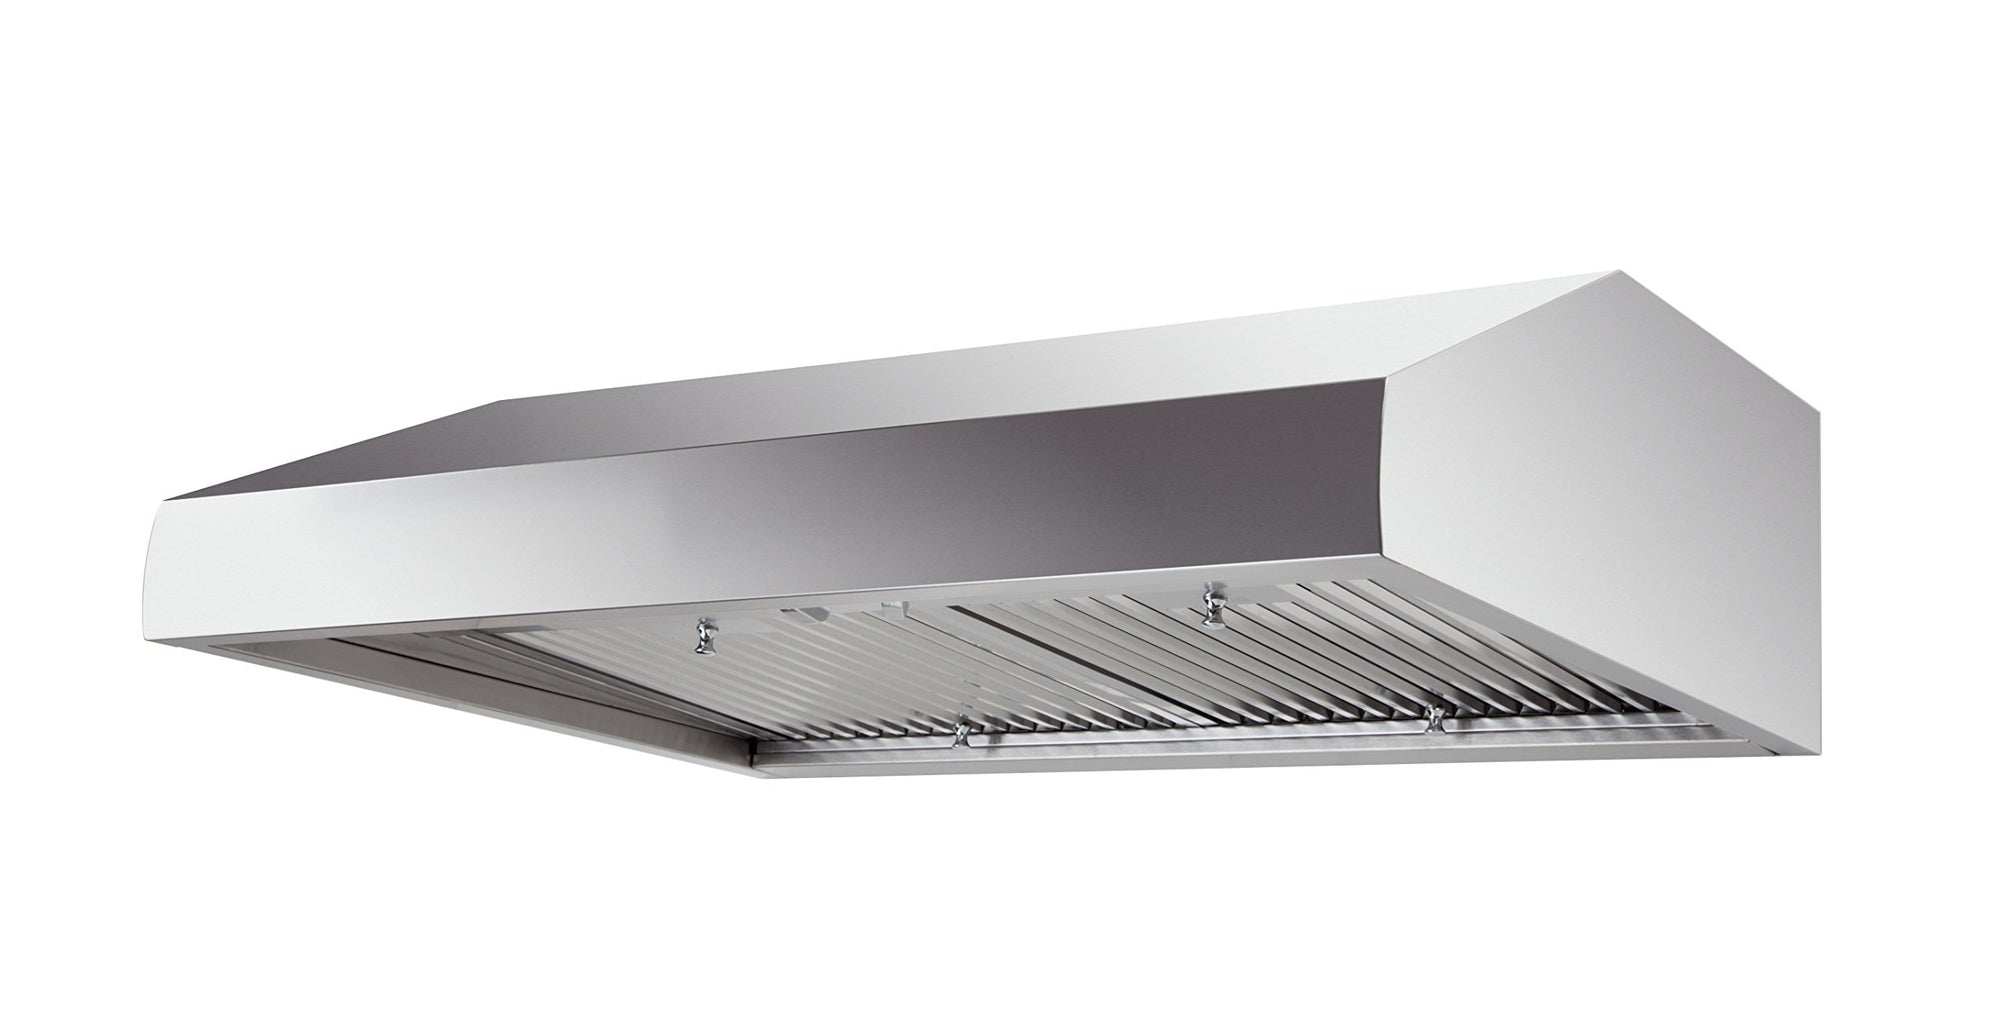 West Wind 30-inch PRO PERFORMANCE 700 CFM Stainless Steel Slim Under Cabinet Ducted Kitchen Range Hood Design